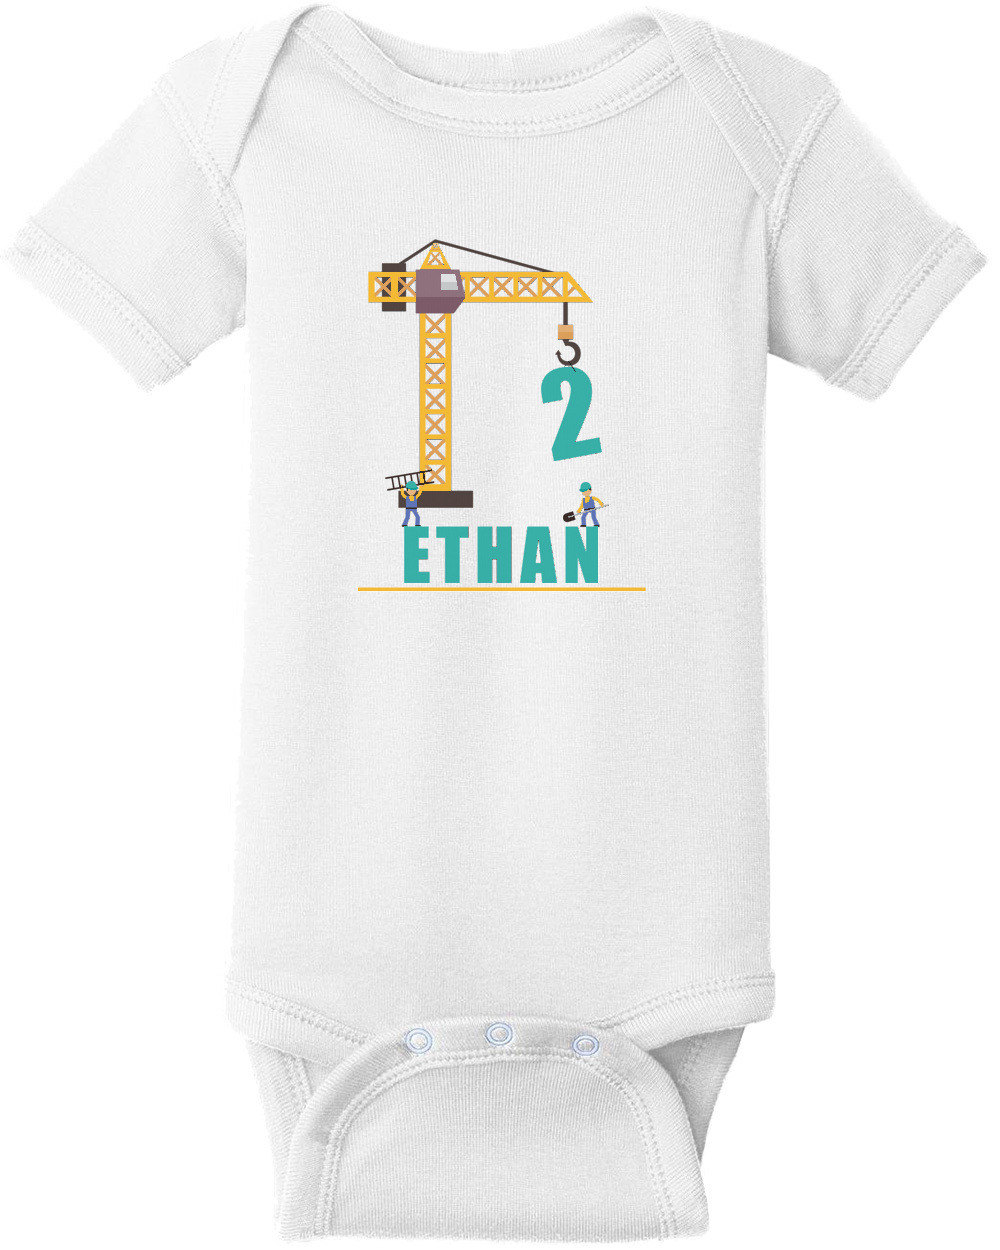 Construction Boy's Birthday -  Custom T-Shirt with your boys name and age. Personalized Birthday T-Shirt